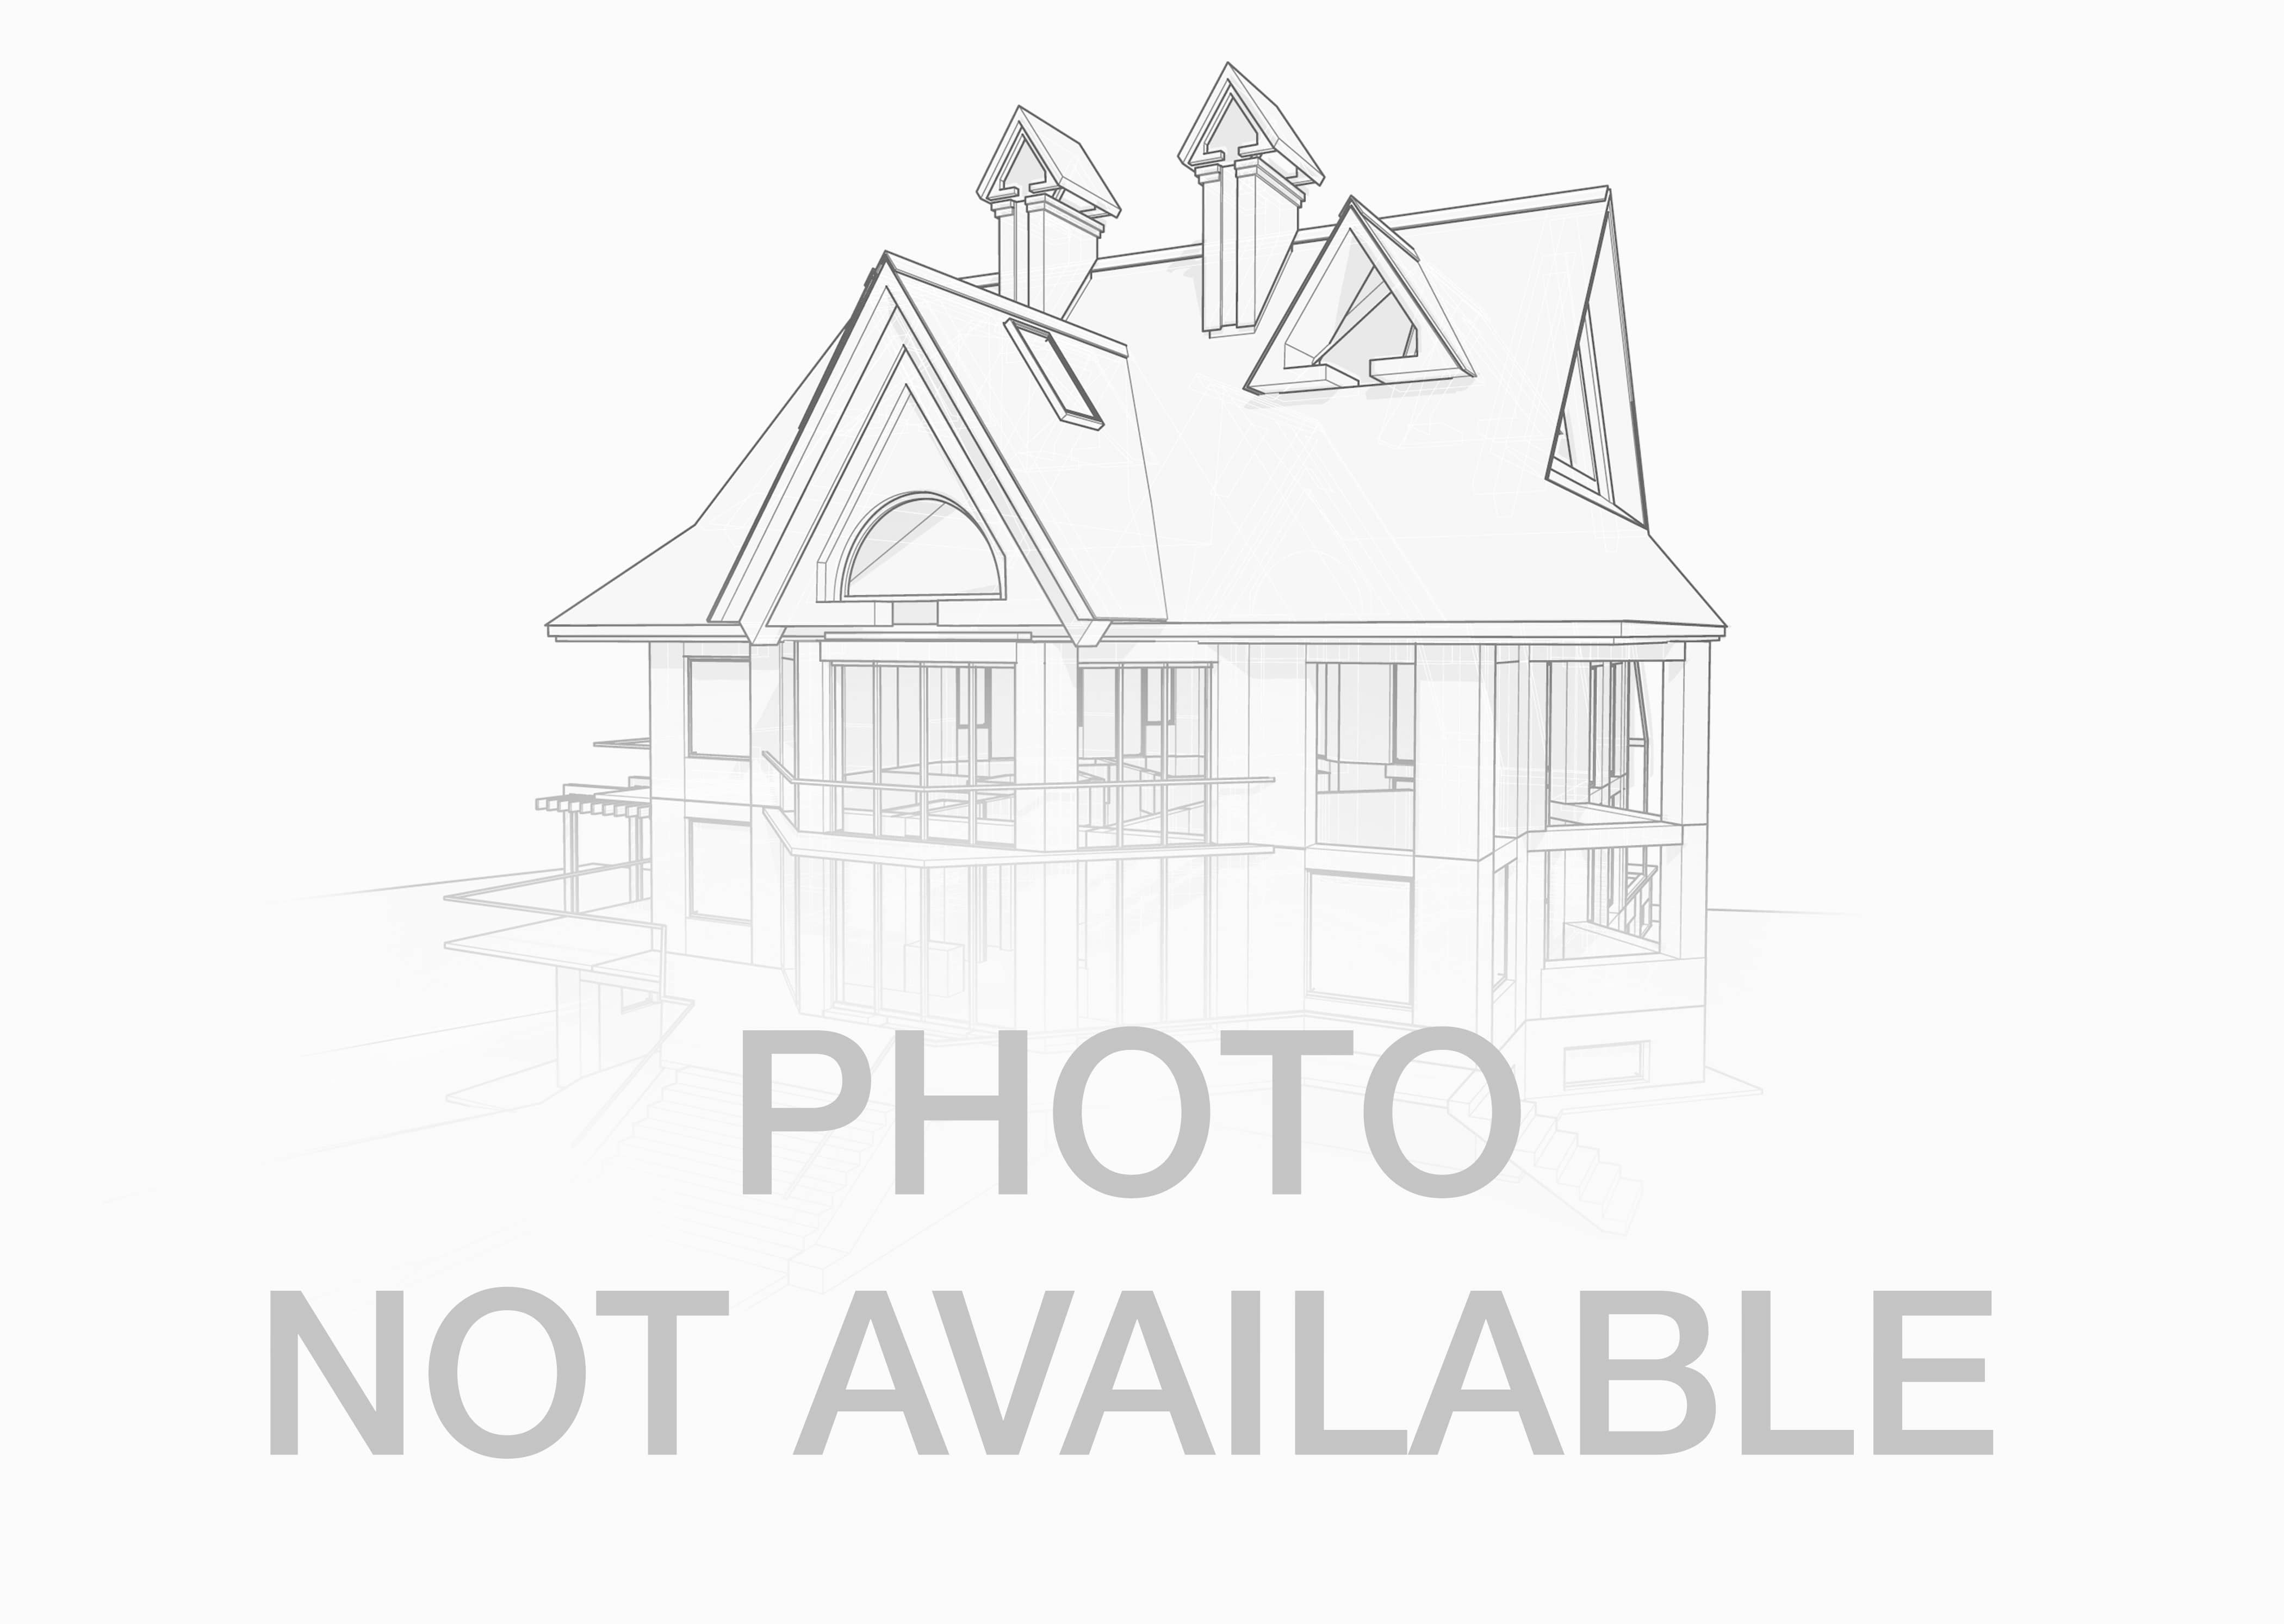 Realtors In Marianna Florida With Rental Property